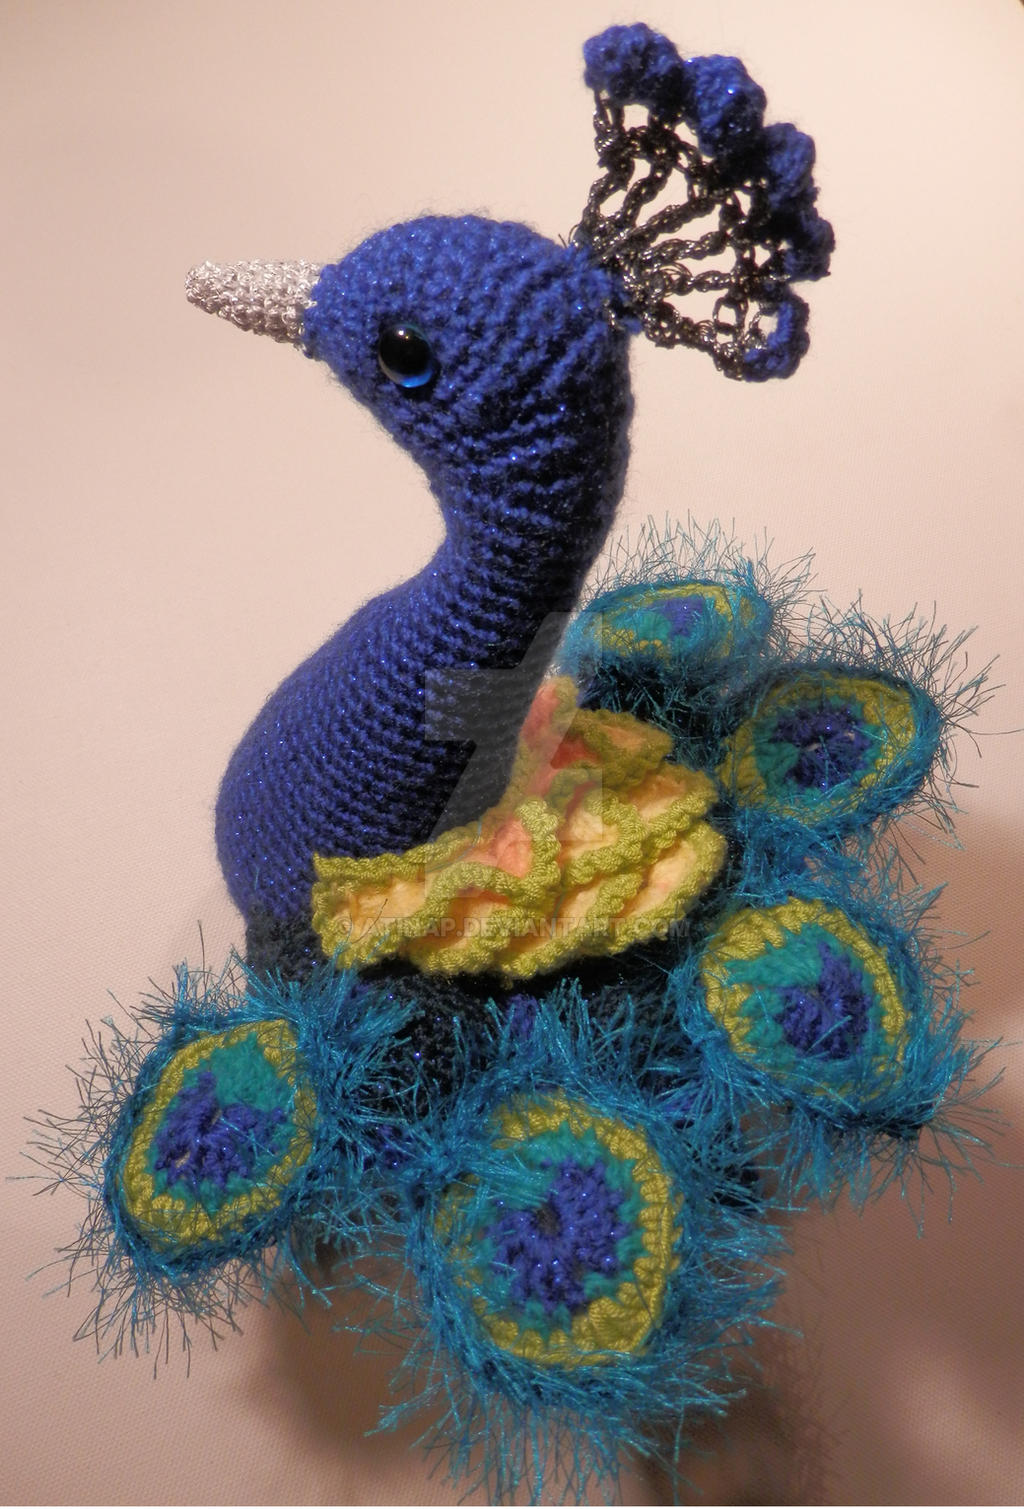 Free Crochet Pattern Peacock Feather : Blue Peacock Amigurumi by AtinaP on DeviantArt